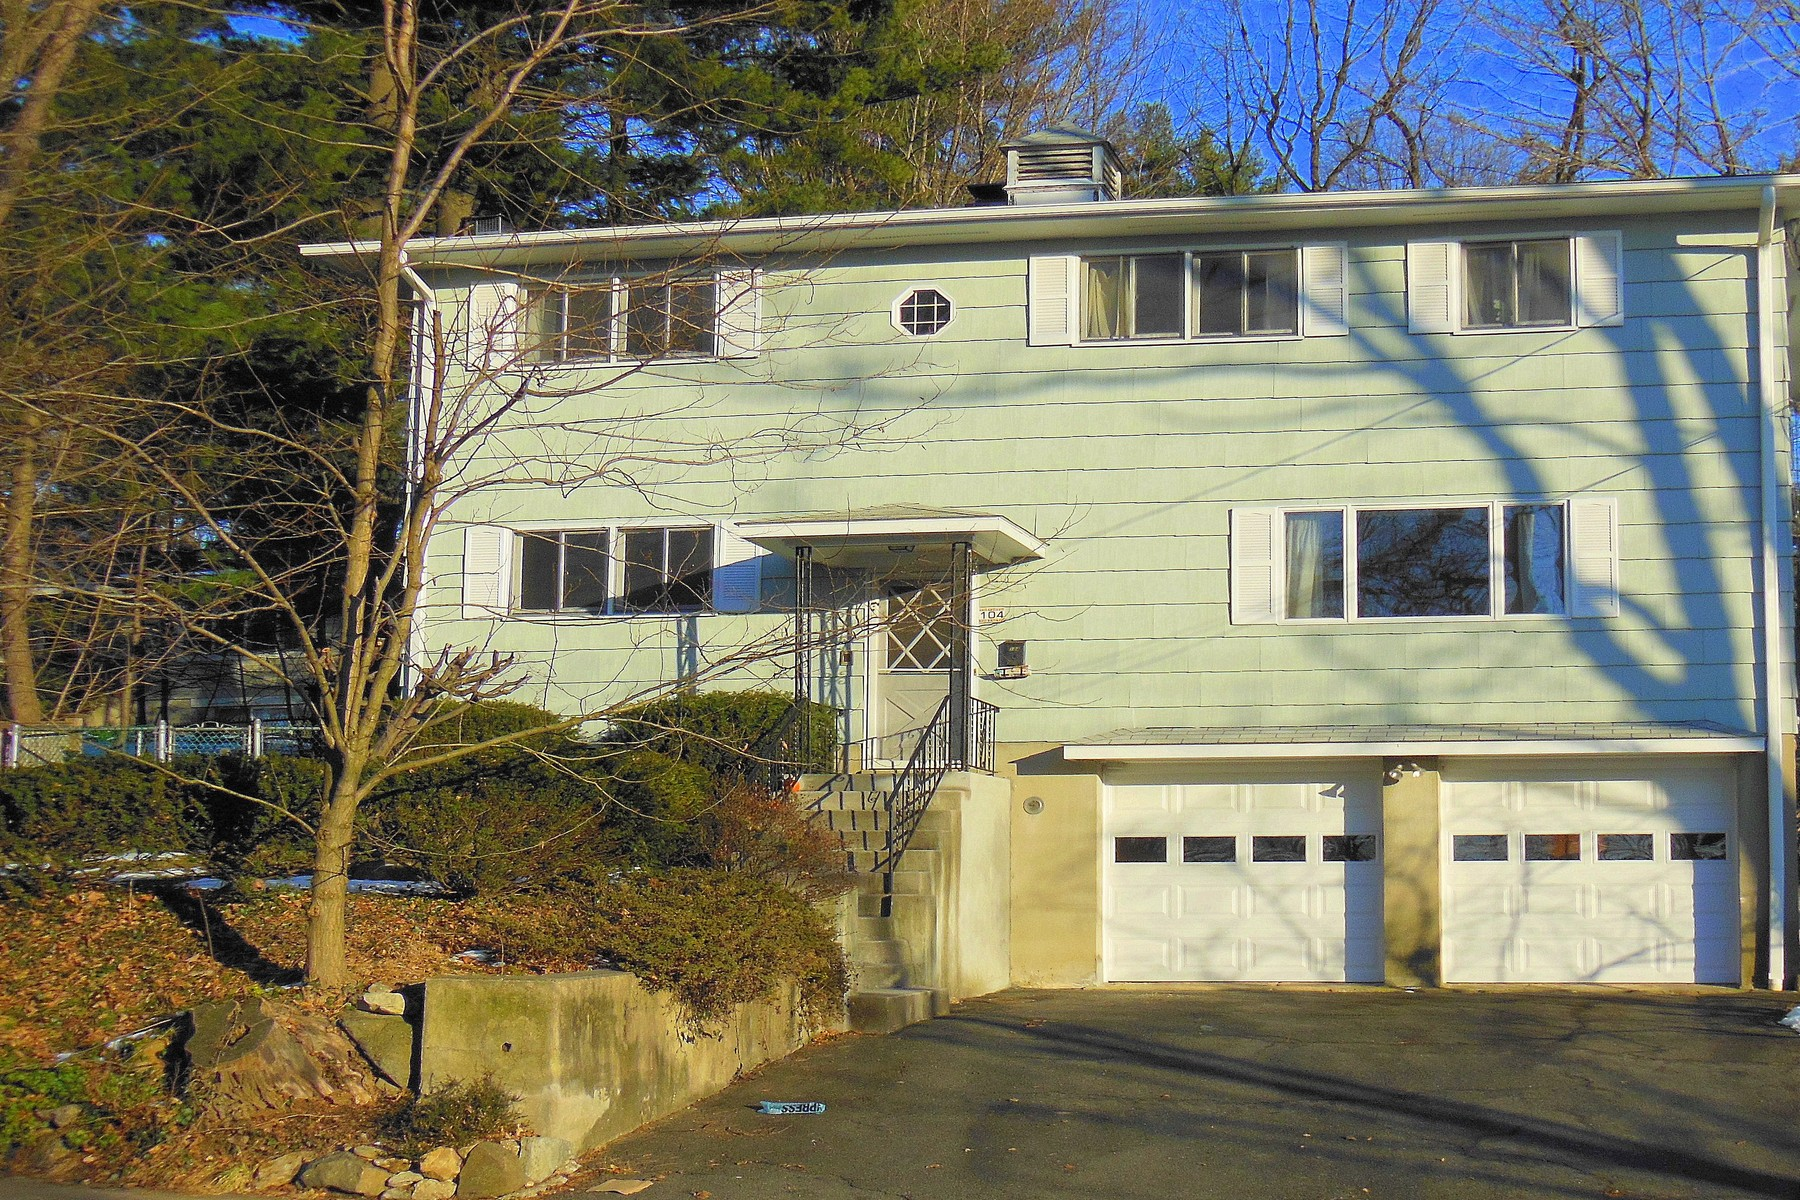 独户住宅 为 出租 在 Immaculately Maintained 104 Cleveland Drive Croton On Hudson, 纽约州 10520 美国